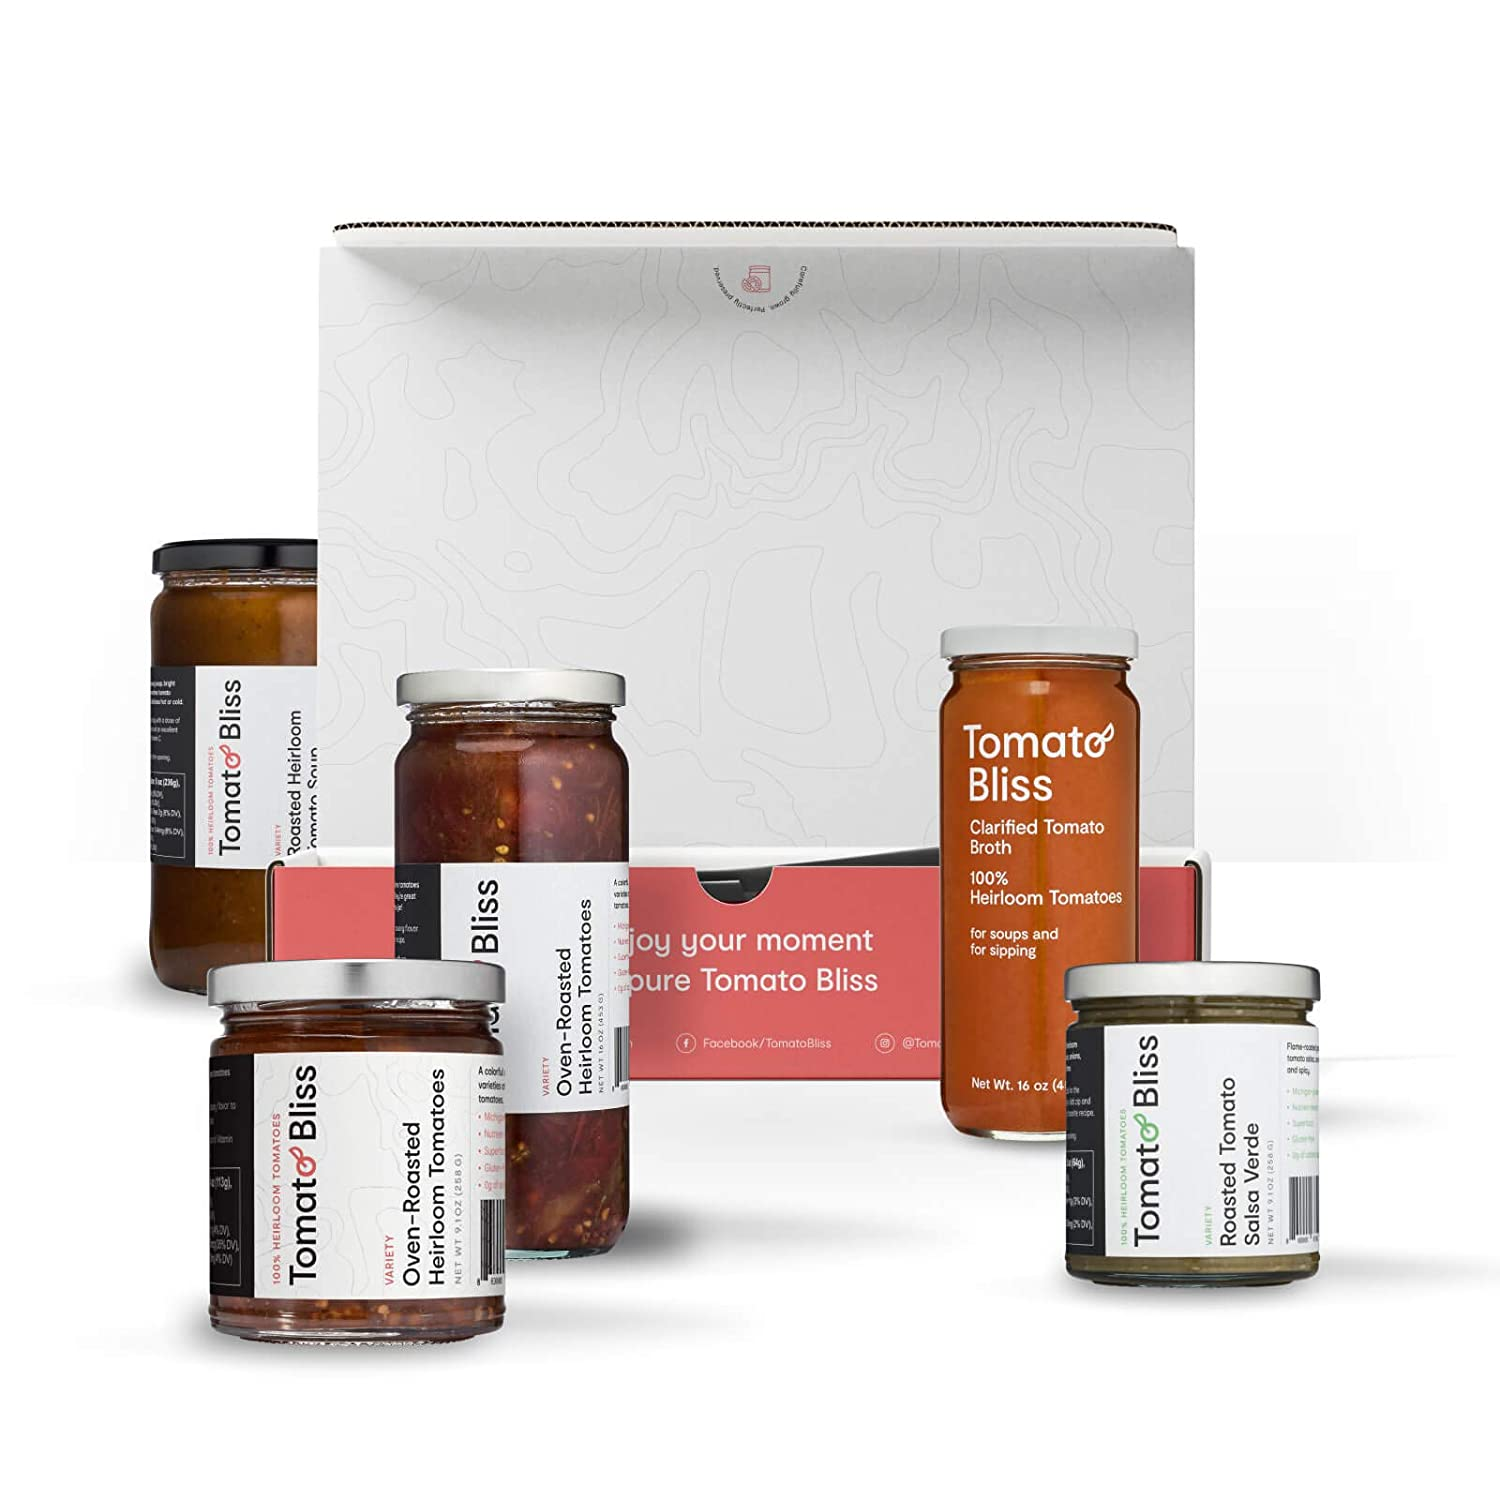 Gourmet Food Gift Box: Oven-Roasted Heirloom Tomatoes, Tomato Salsa Verde, Roasted Tomato Soup and Clarified Tomato Broth – Gifts for Foodies, Gifts for Chefs, Gifts for Cooks - Tomato Bliss.